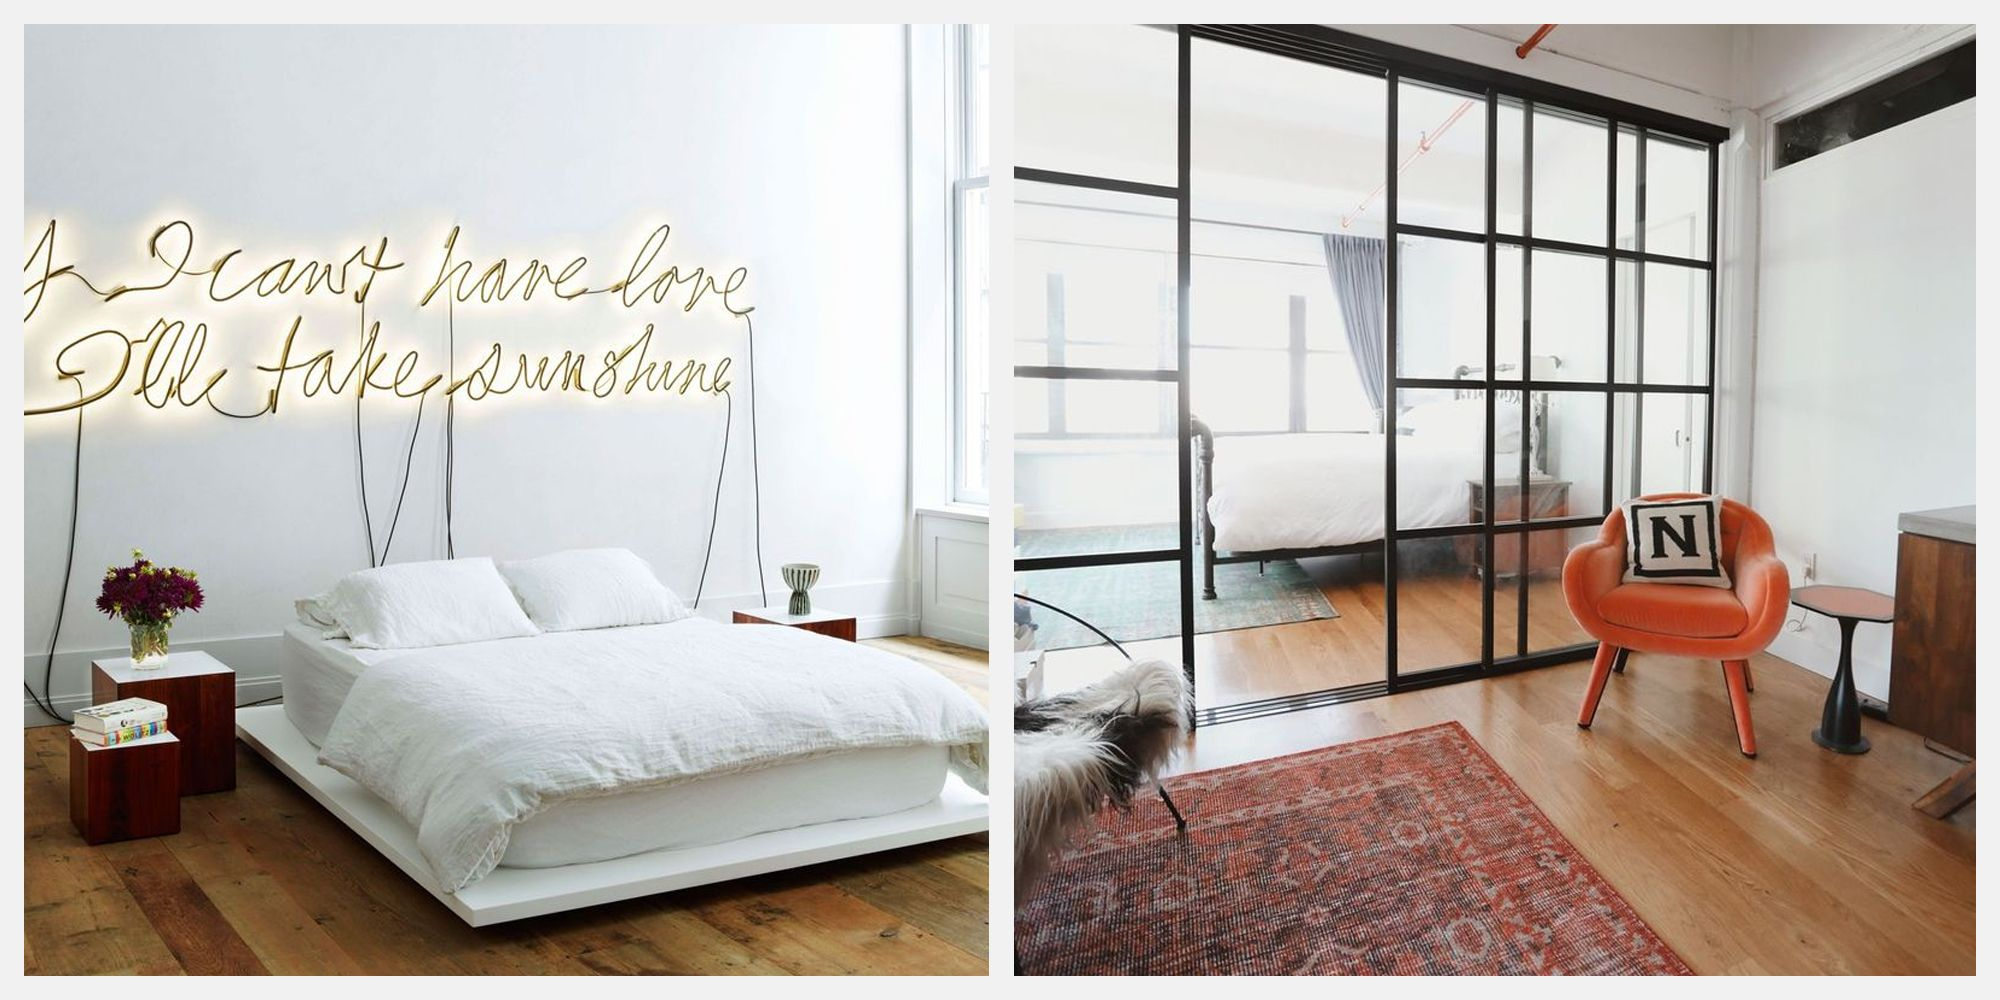 30 Inspiring Modern Bedroom Ideas Best Modern Bedroom Designs with 15 Awesome Ways How to Makeover Modern Bedroom Ideas